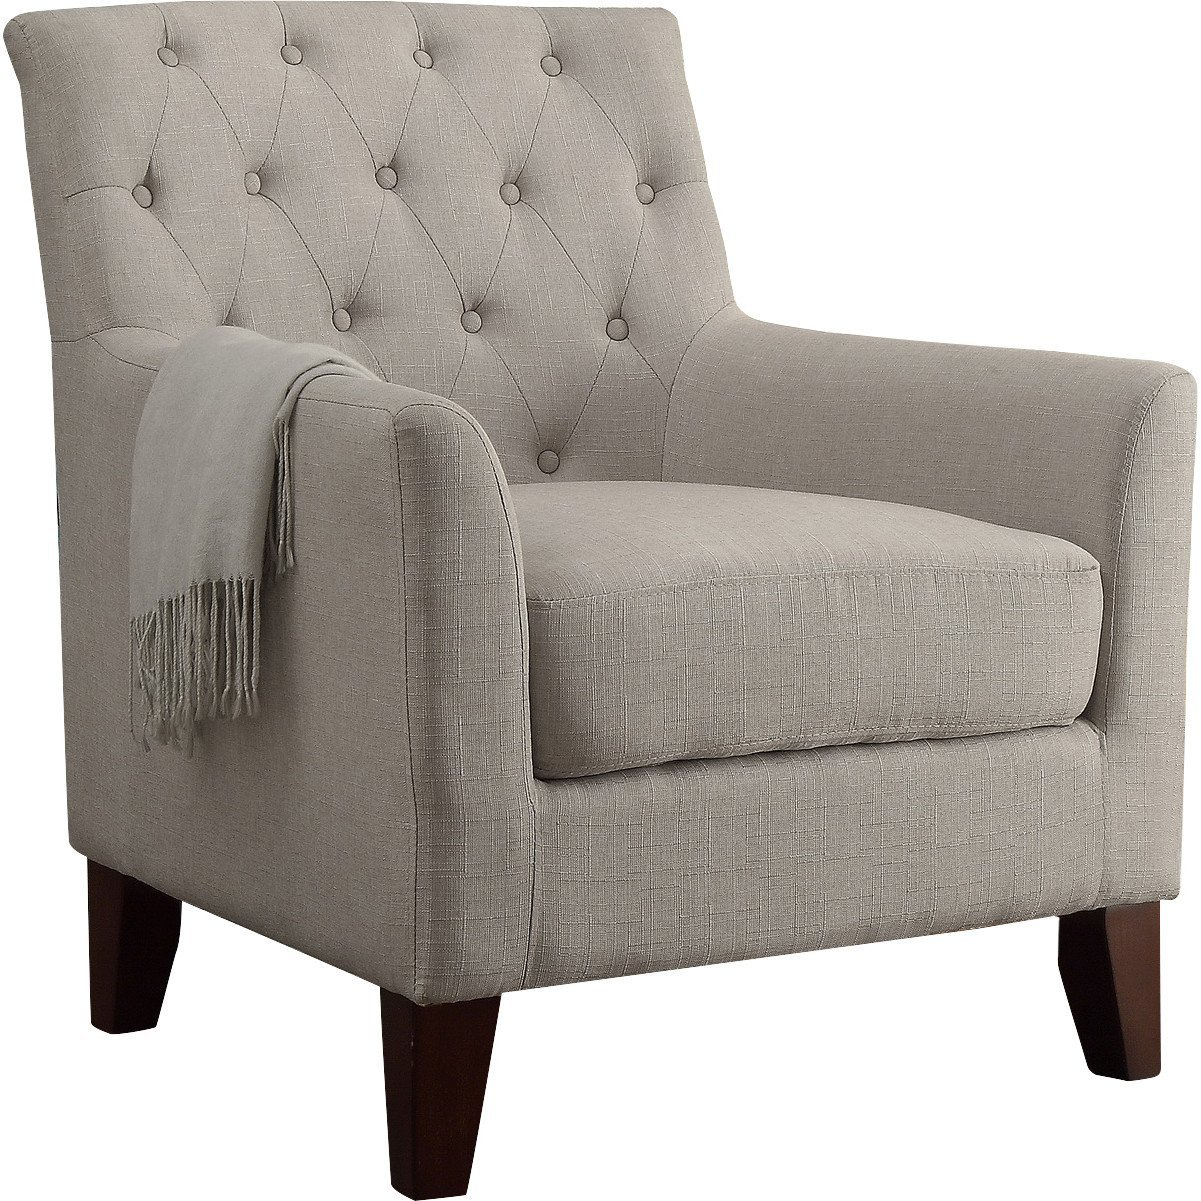 Amazon.com: Clara Tufted Sillón: Kitchen & Dining